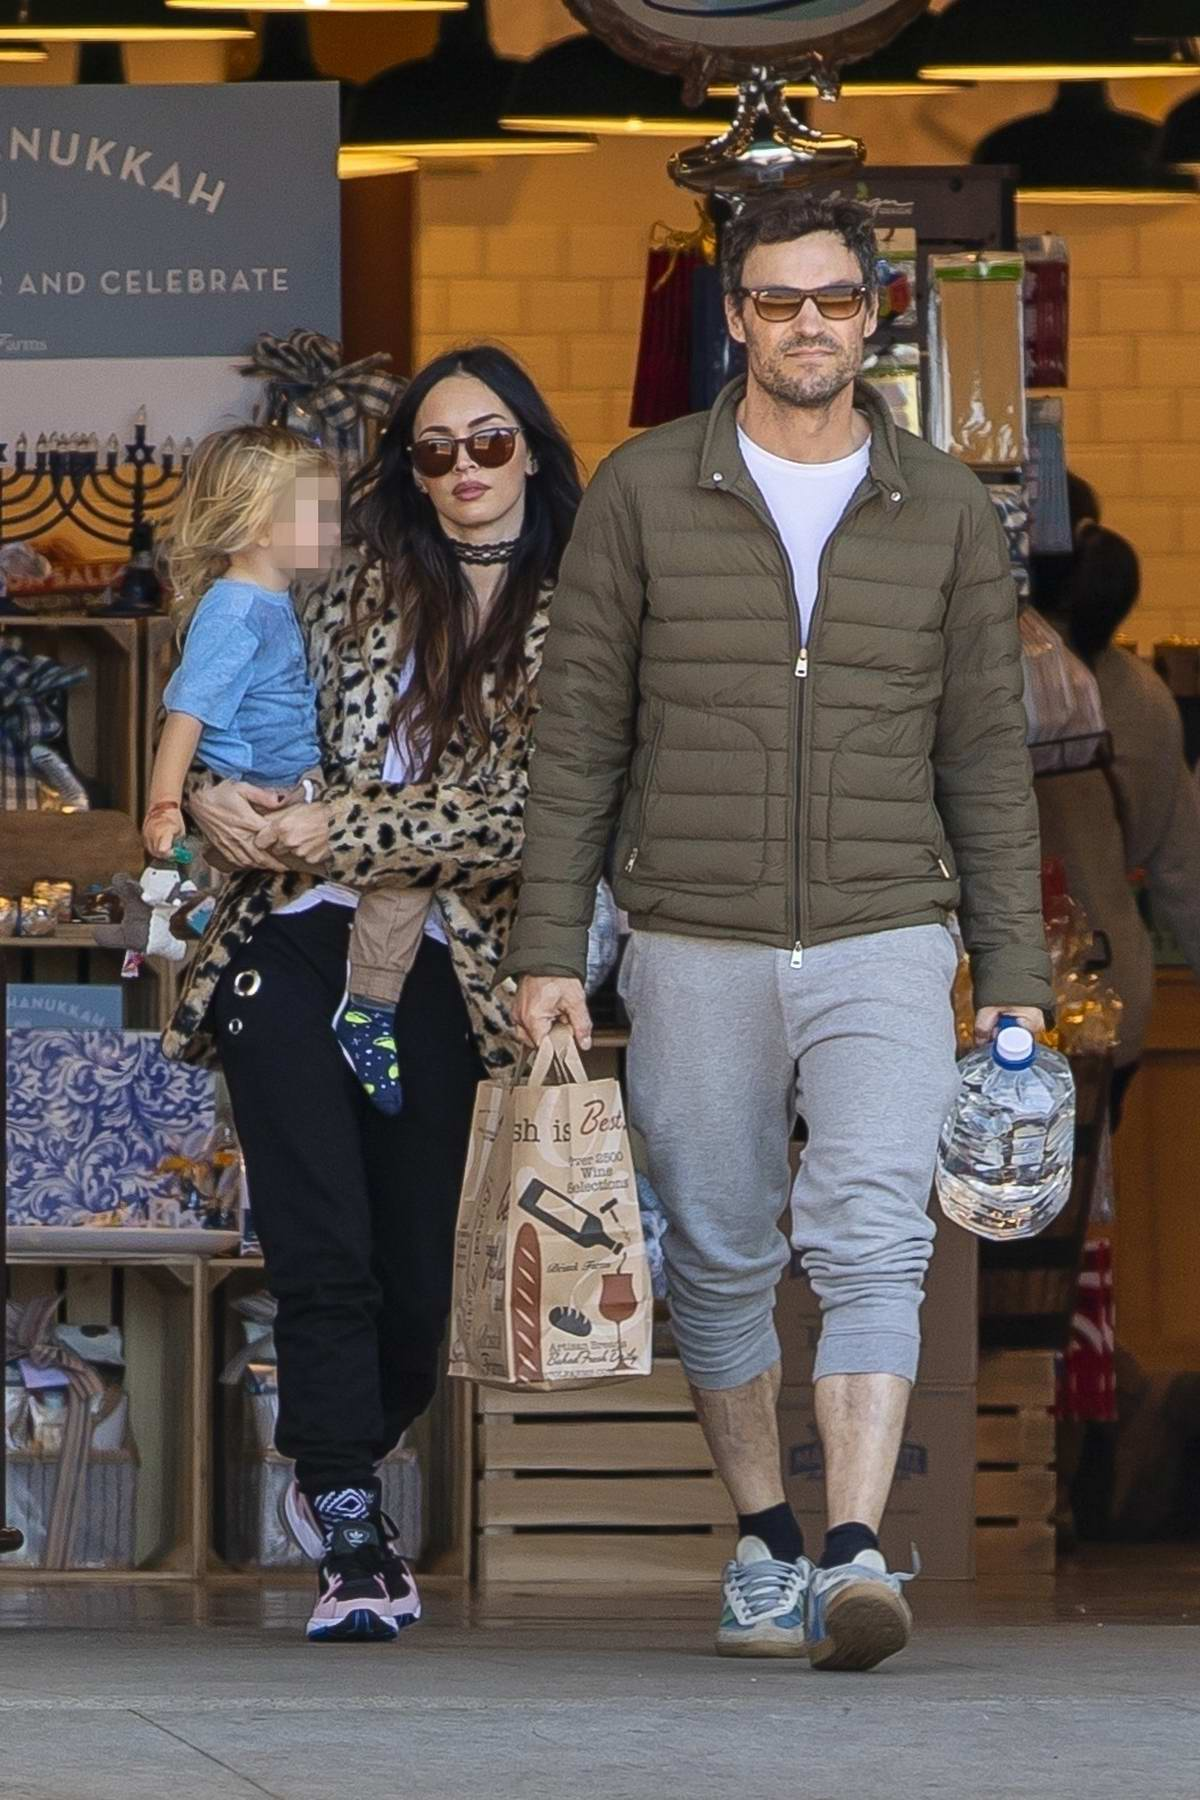 00a5ee4faf1 megan fox wore a leopard print coat as she stepped out with brian ...